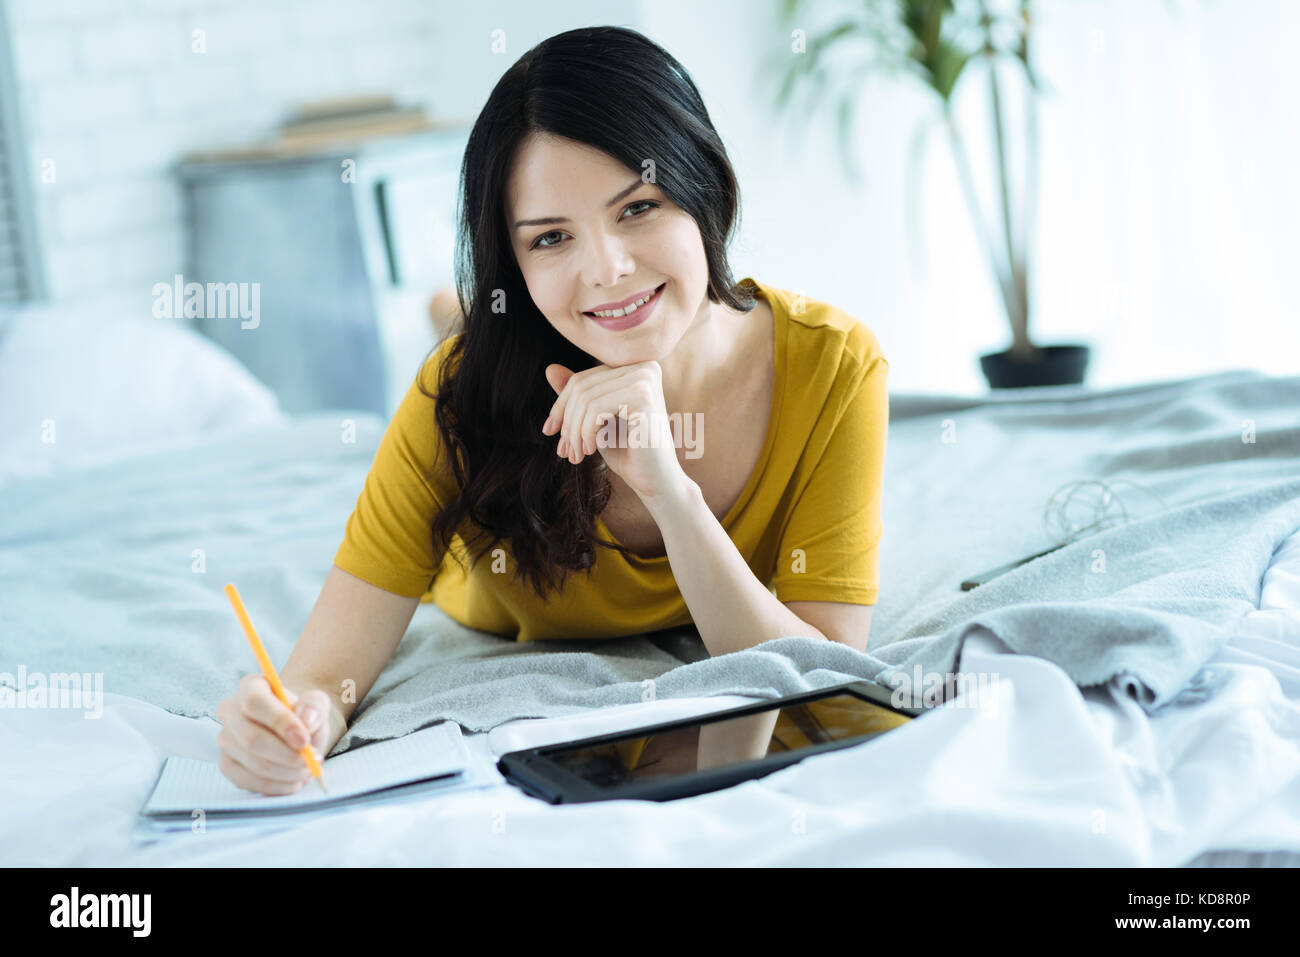 Female freelancer enjoying working from home - Stock Image